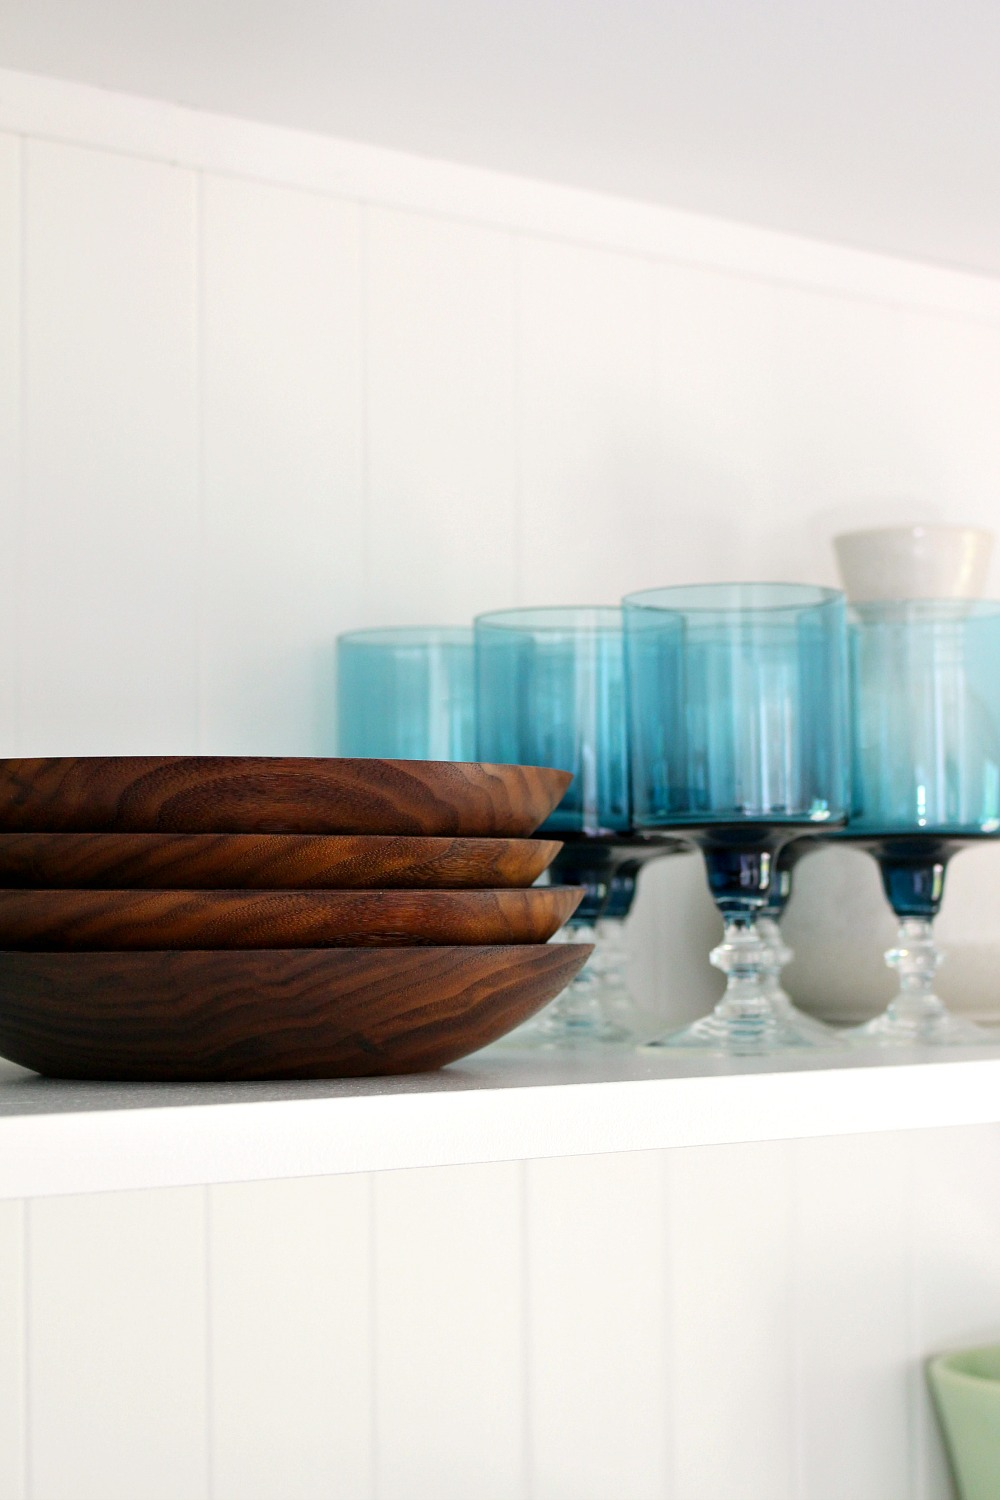 Walnut Salad Bowls on Open Shelving